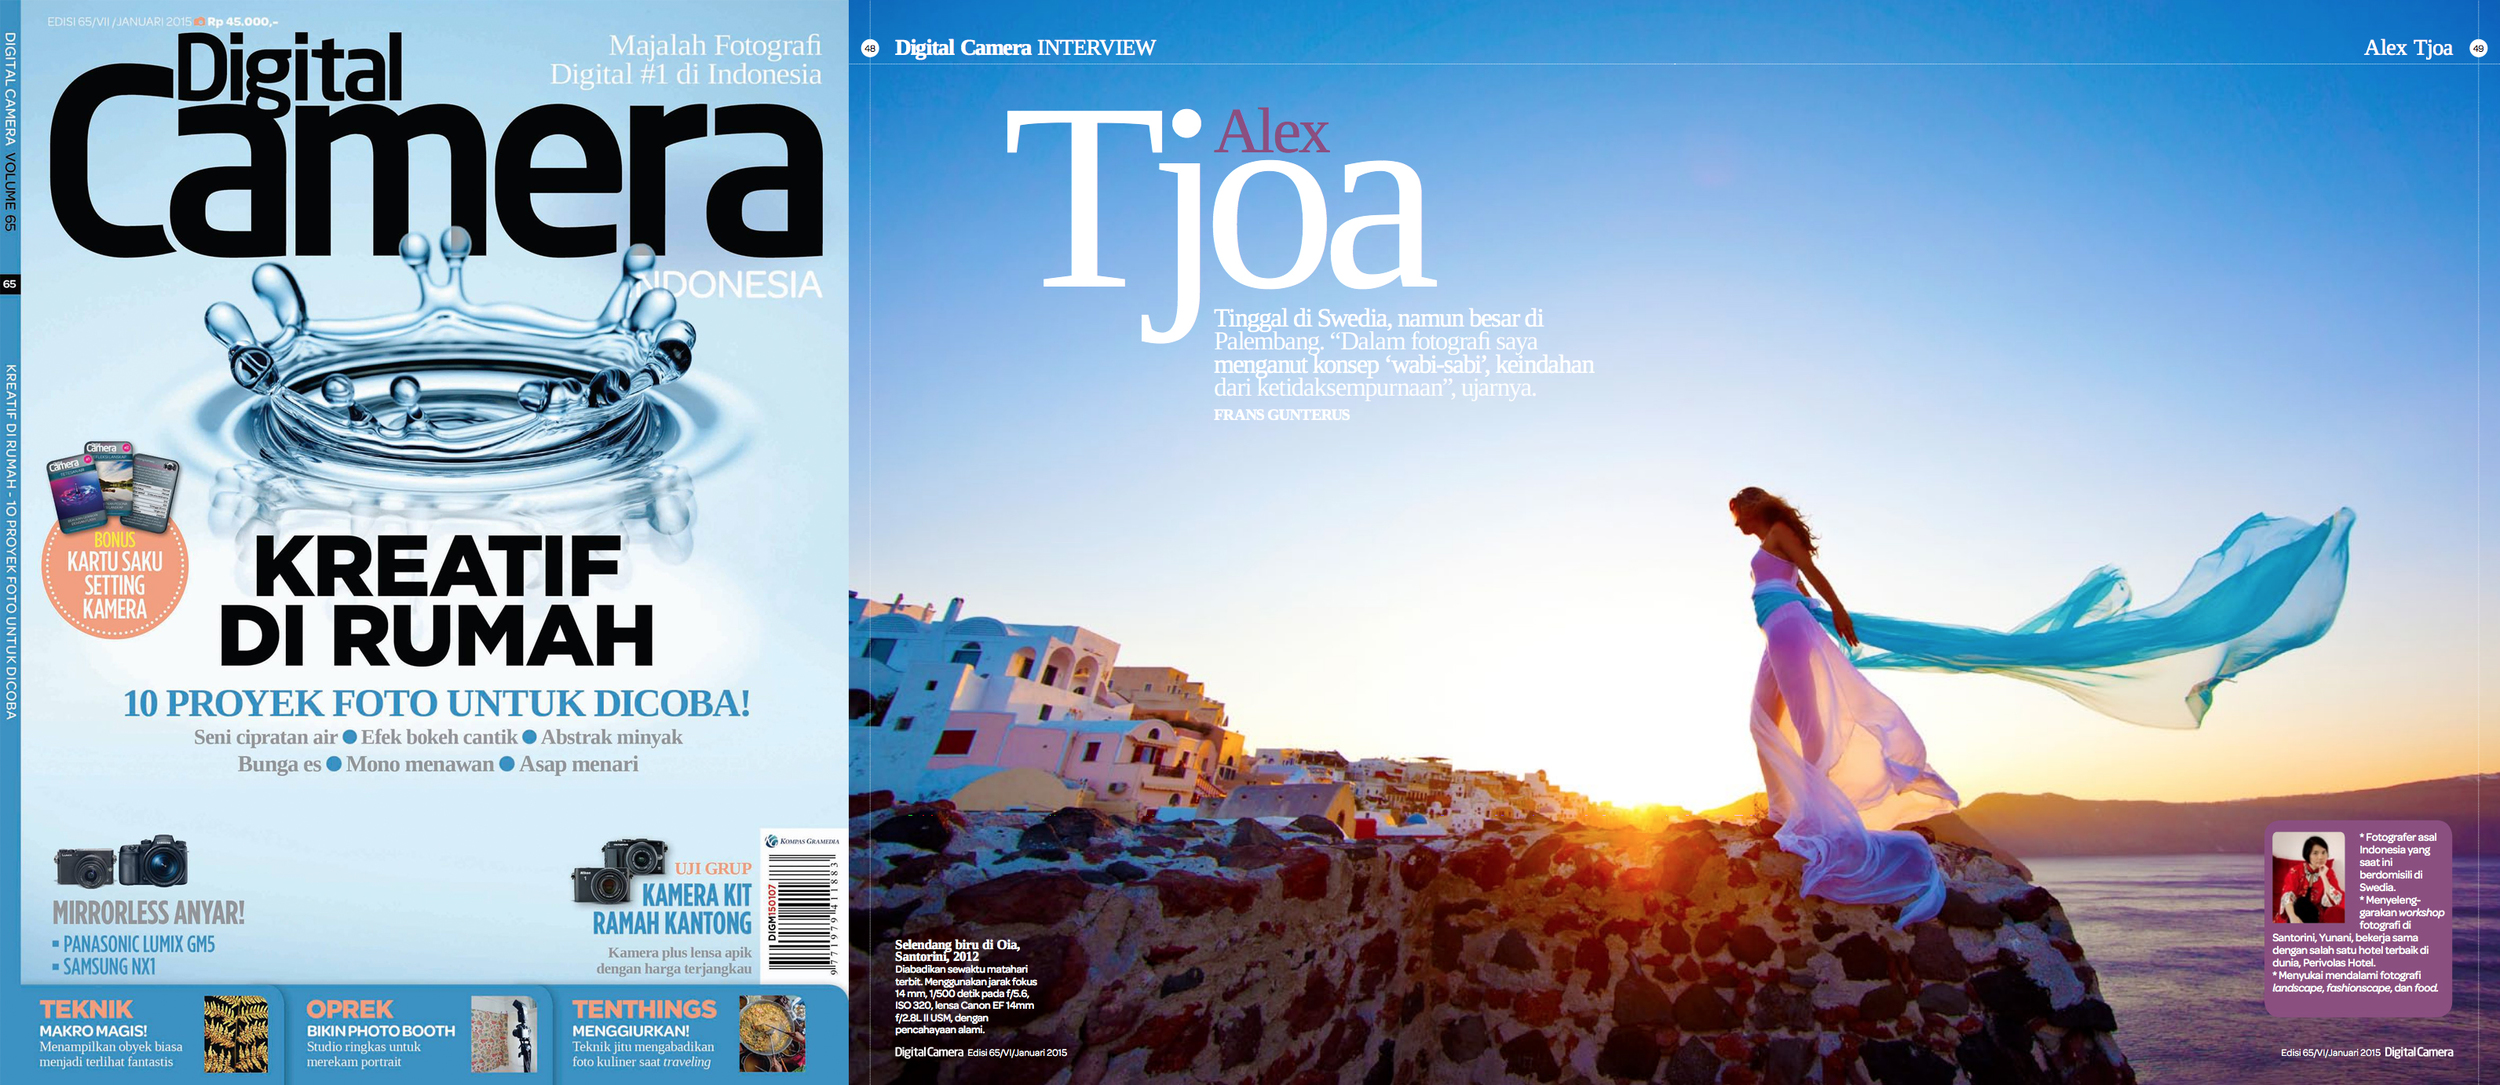 Digital Camera magazine, January 2015, features a six-page interview about Alex Tjoa's photography. To read the full article, click here.